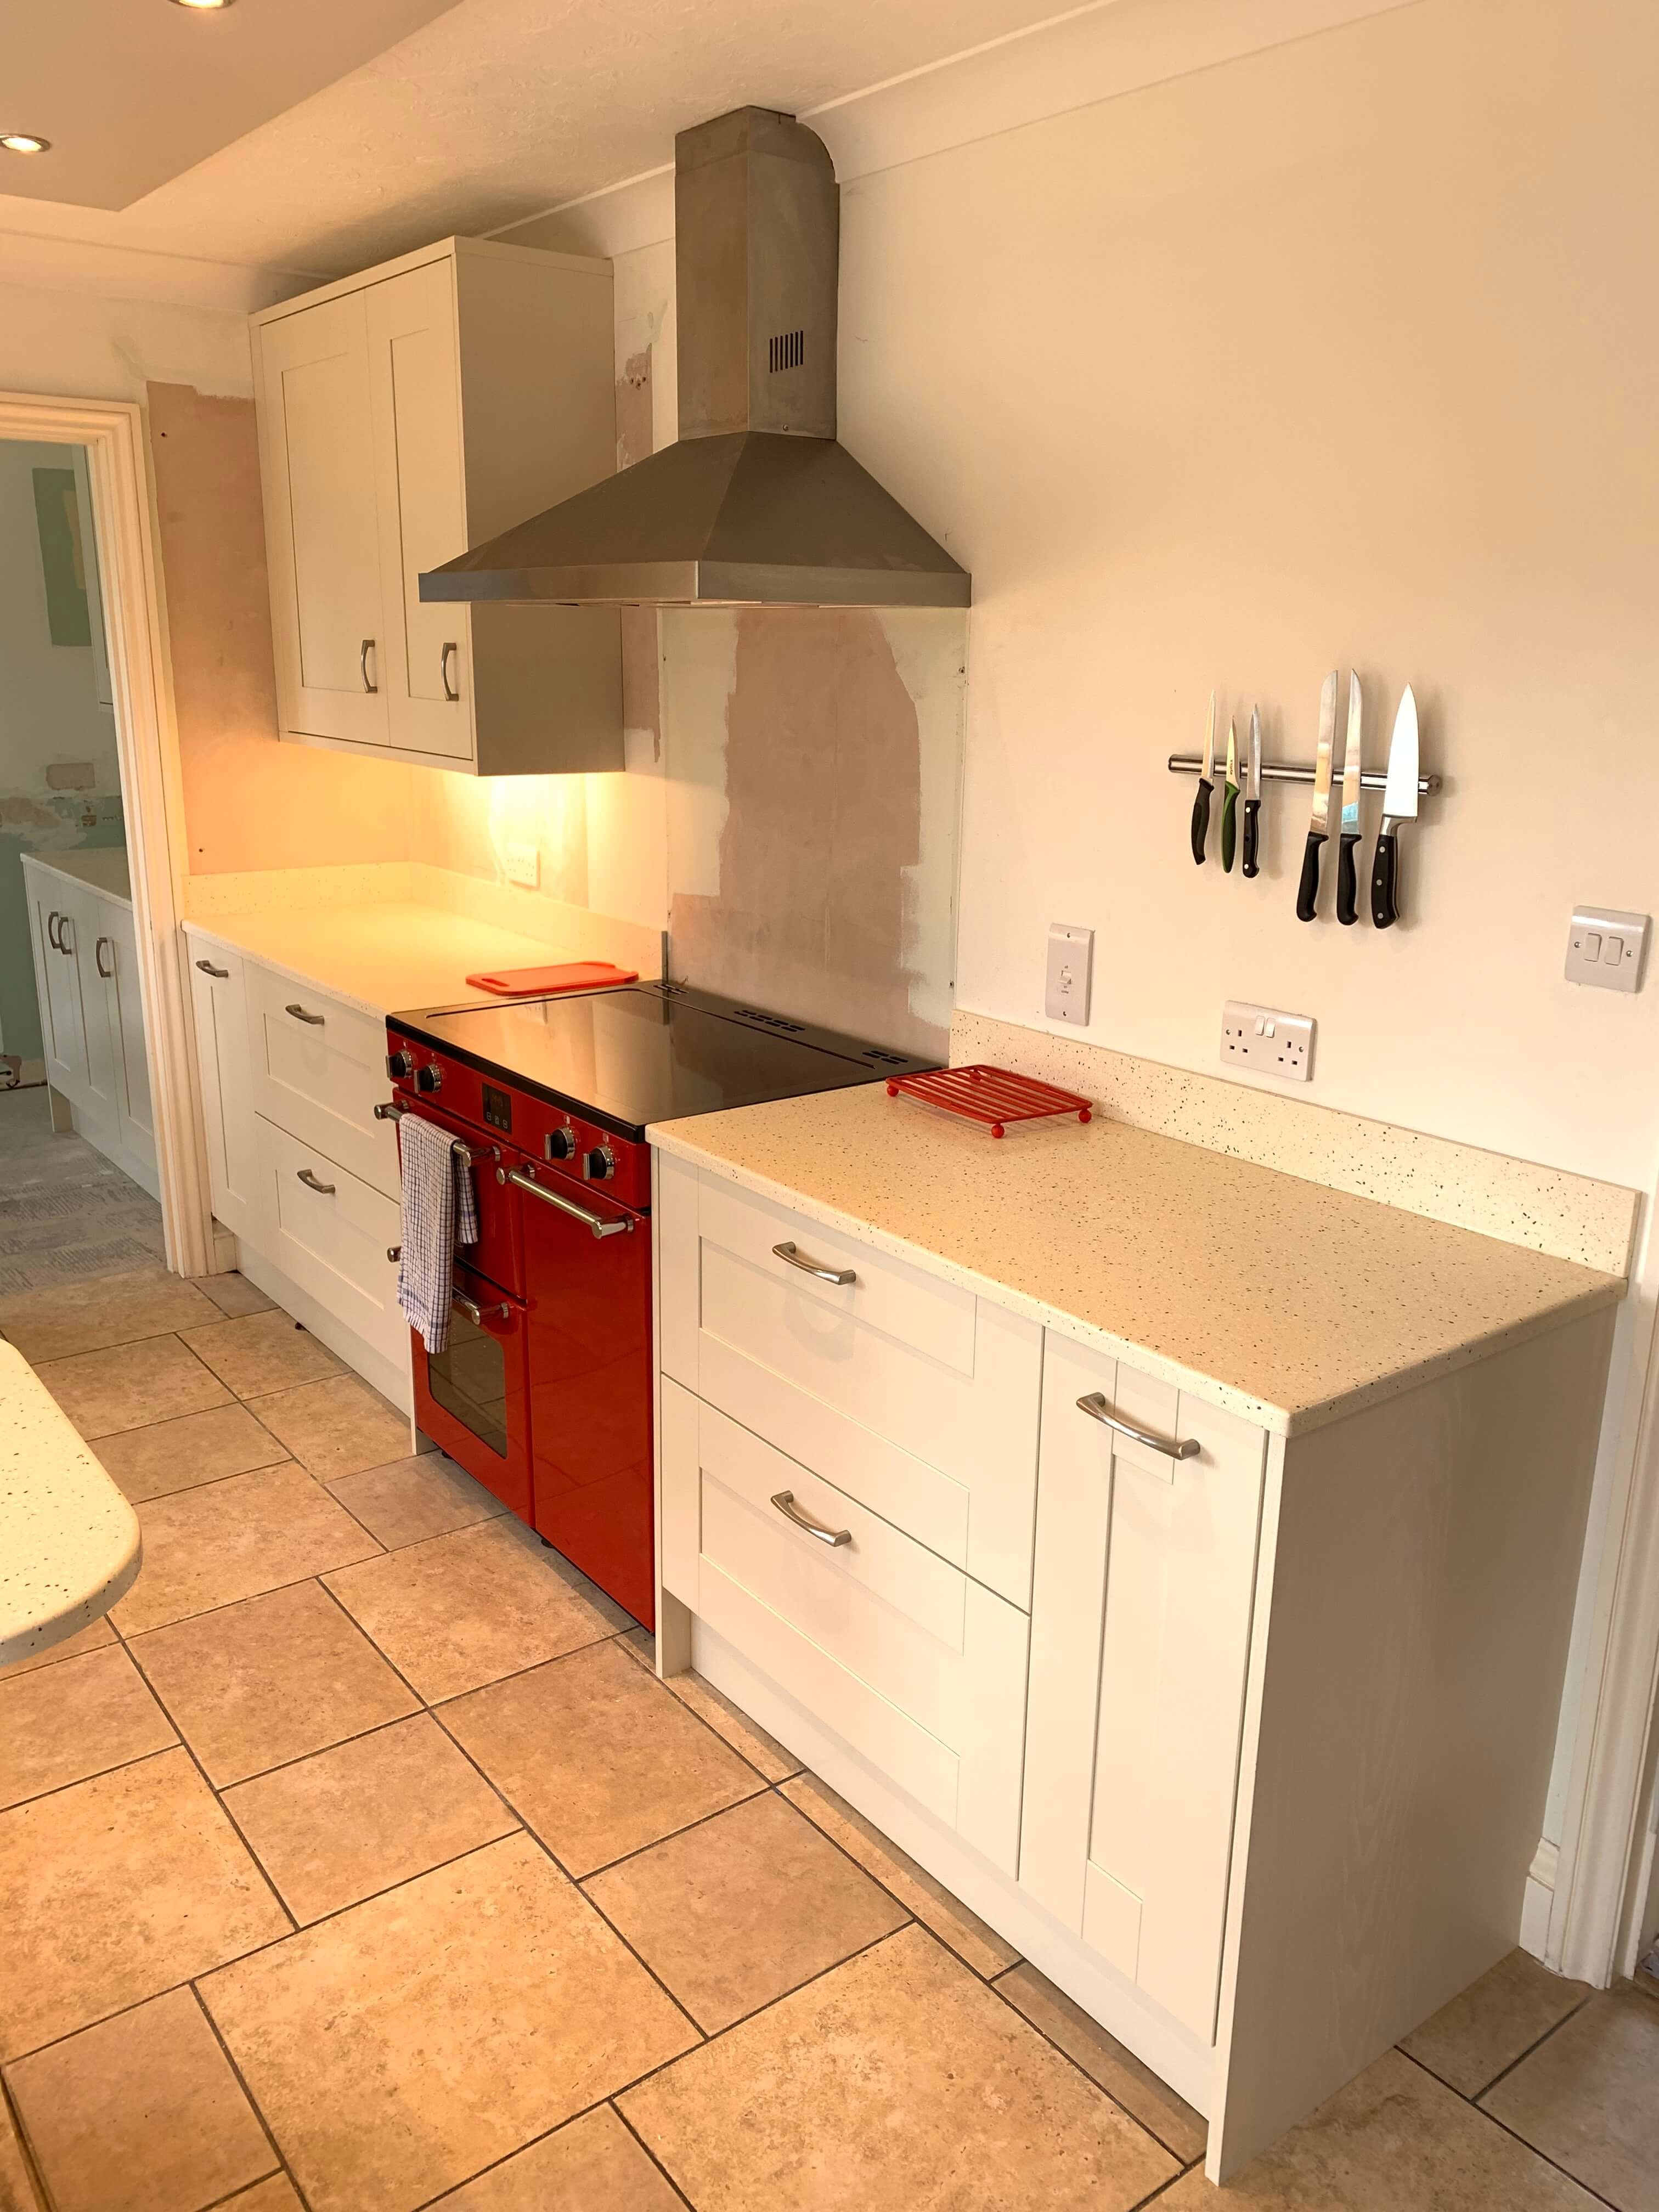 Finished Kitchen showing cooker